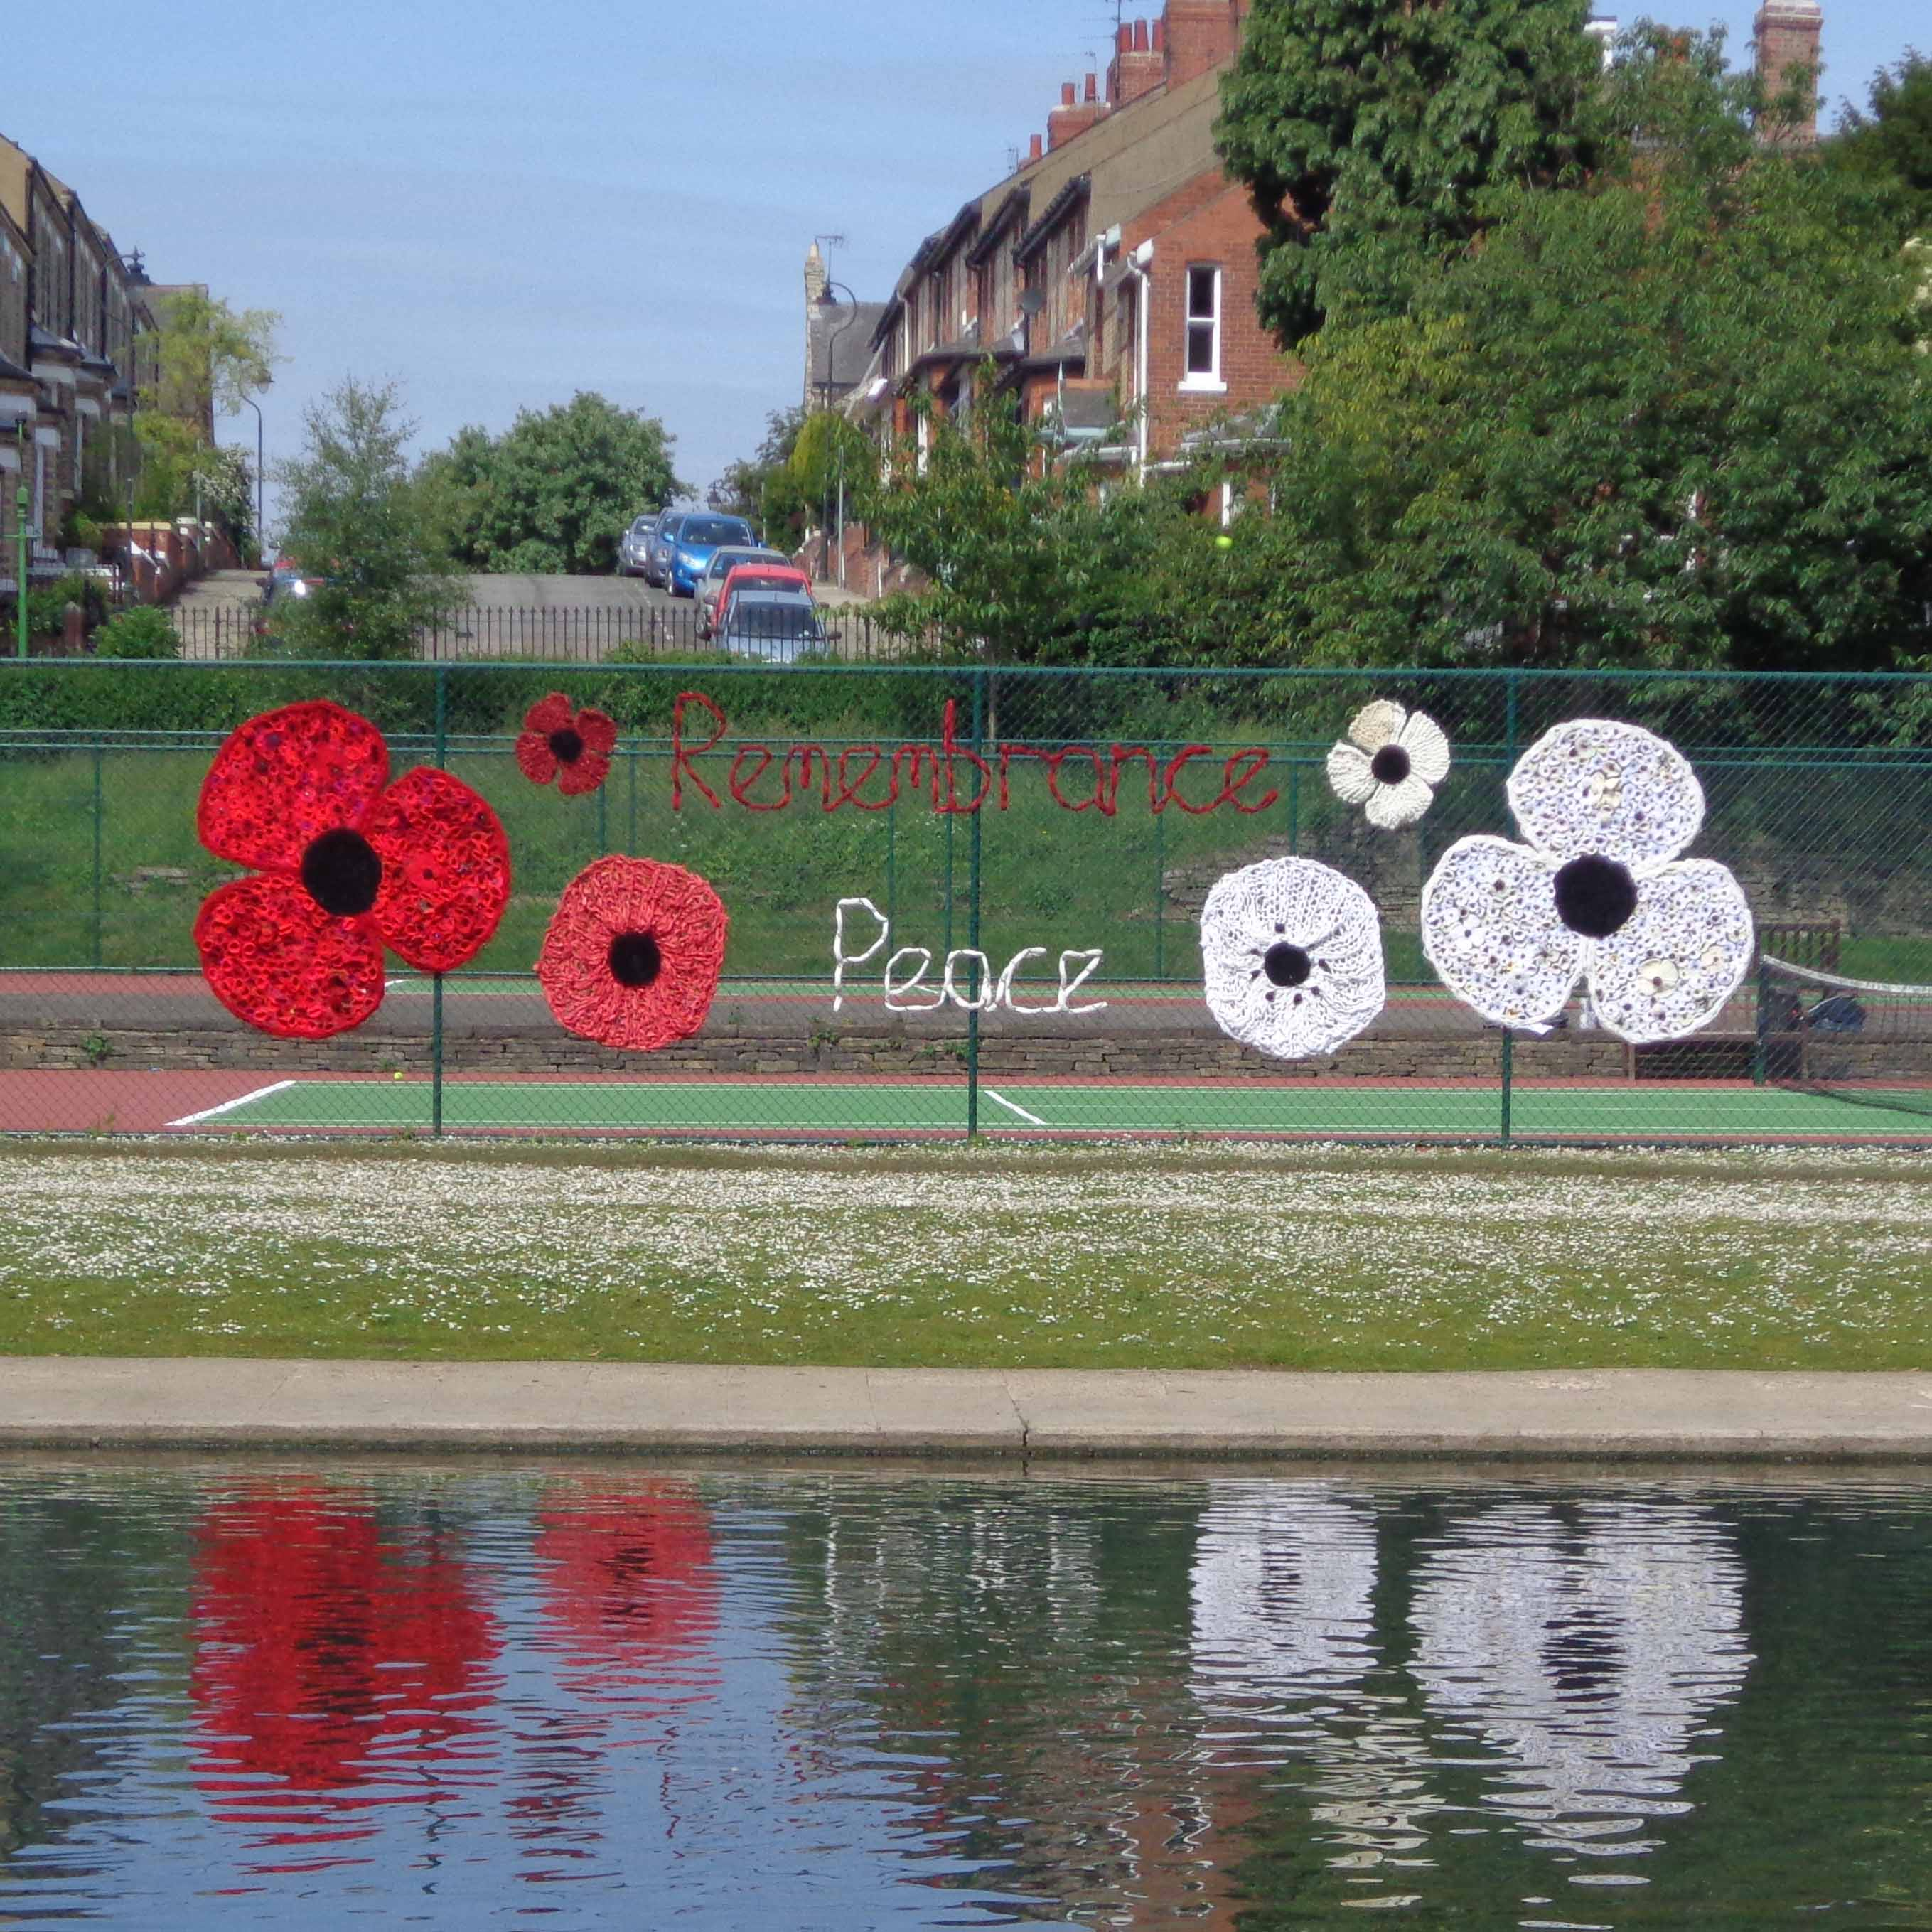 large red and white textile poppies displayed on a chain-link fence